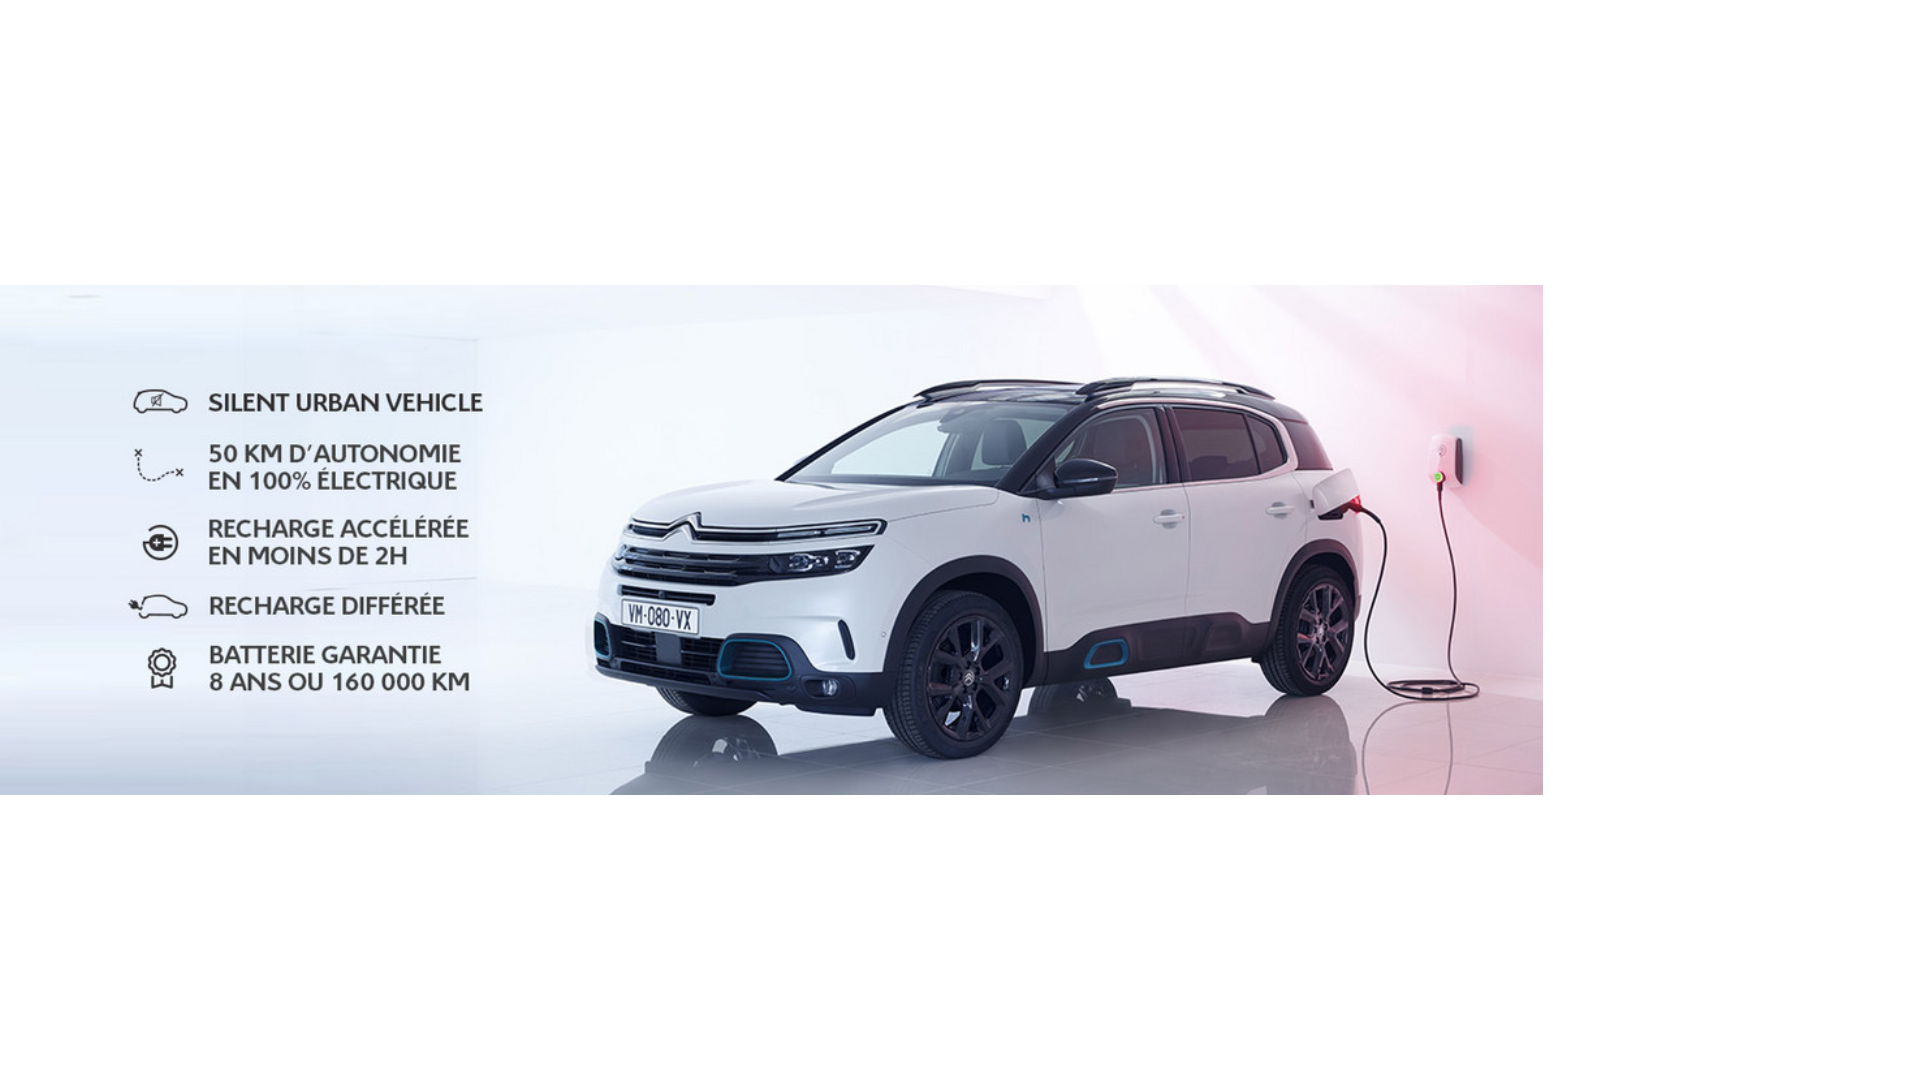 SUV C5 AIRCROSS HYBRID RECHARGEABLE